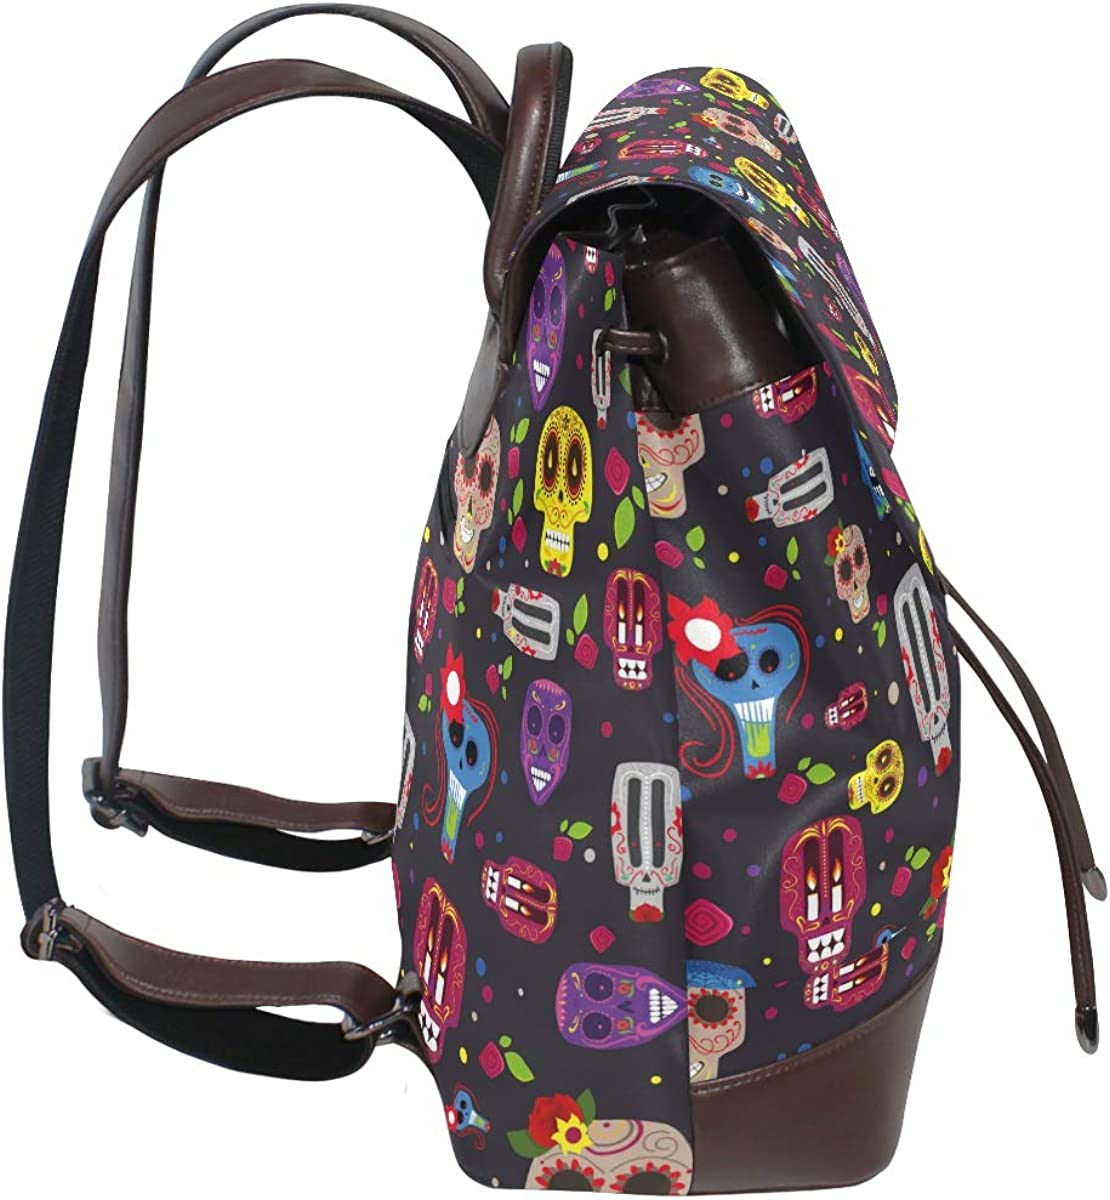 PU Leather Shoulder Bag,Mexican Holiday Of The Dead Backpack,Portable Travel School Rucksack,Satchel with Top Handle